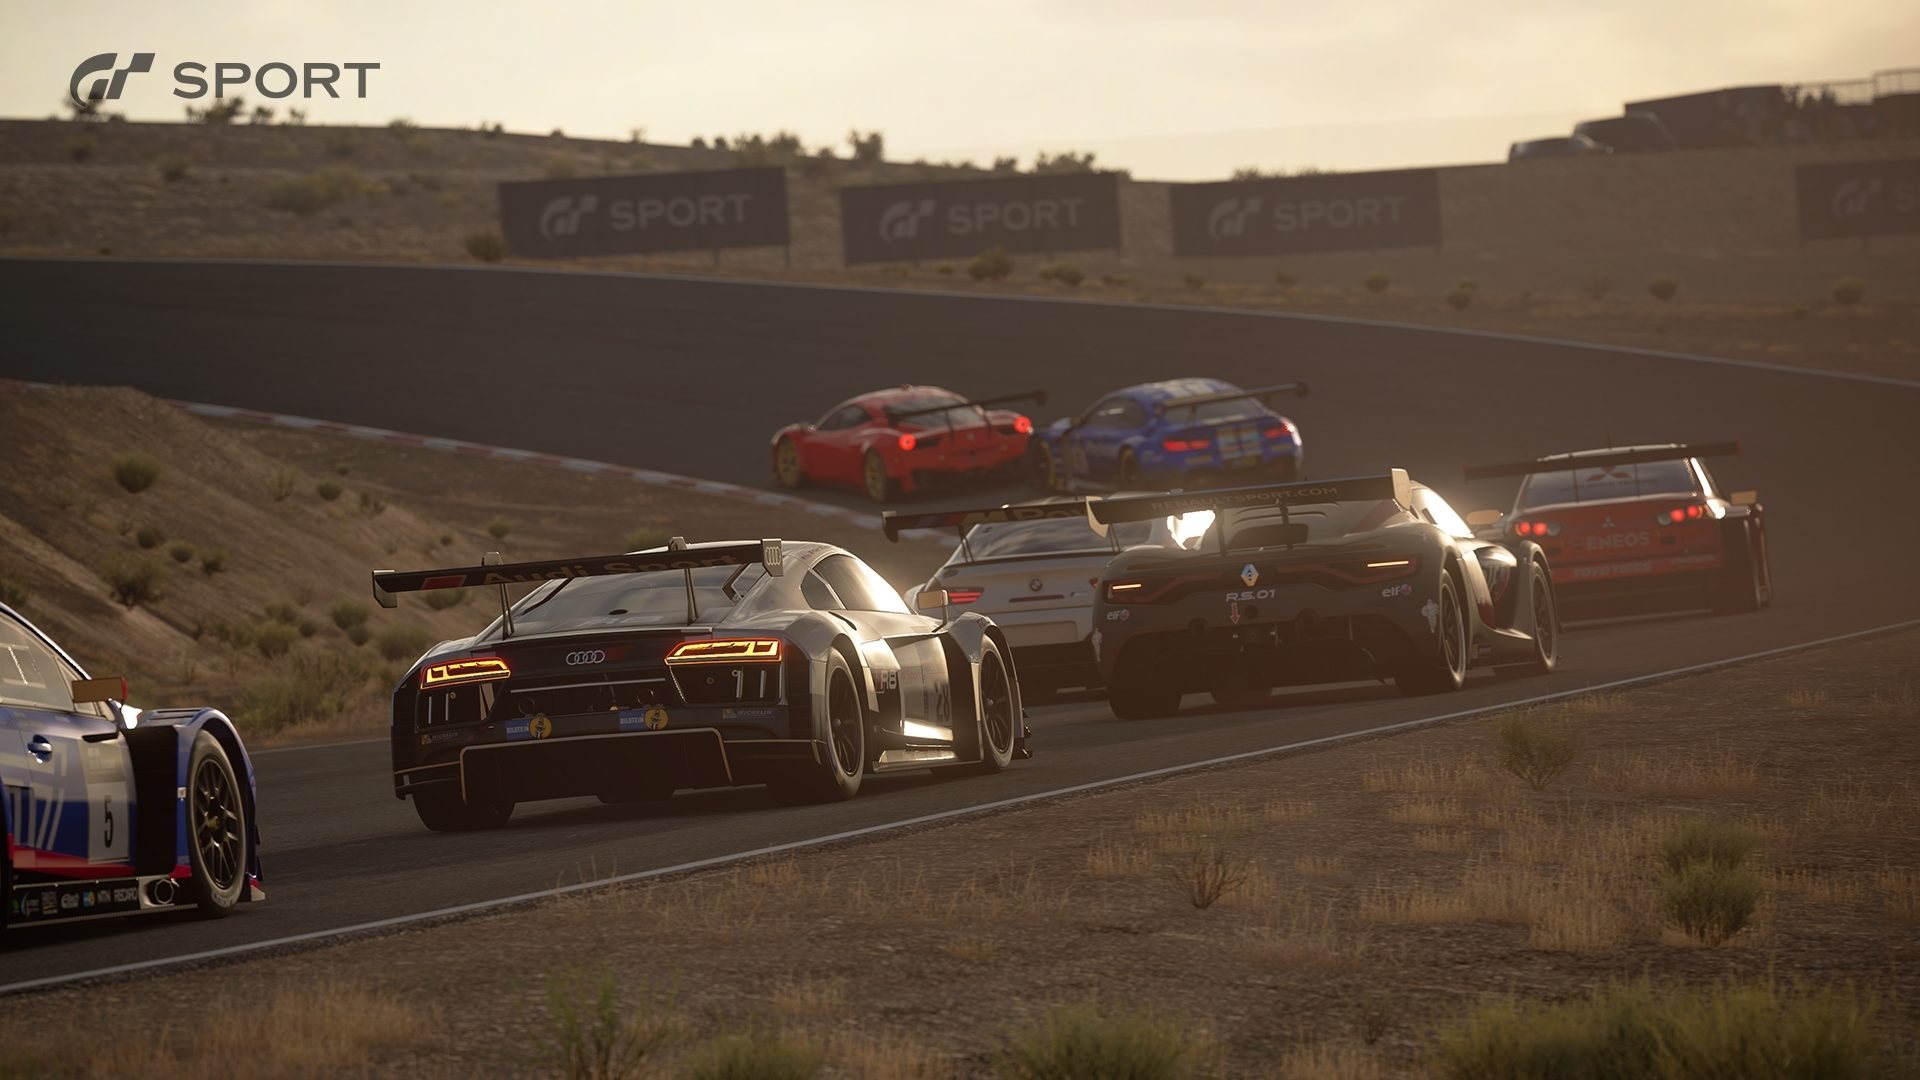 gran turismo sport wallpapers: Direct-Capture GT Sport Footage: Willow Springs Raceway